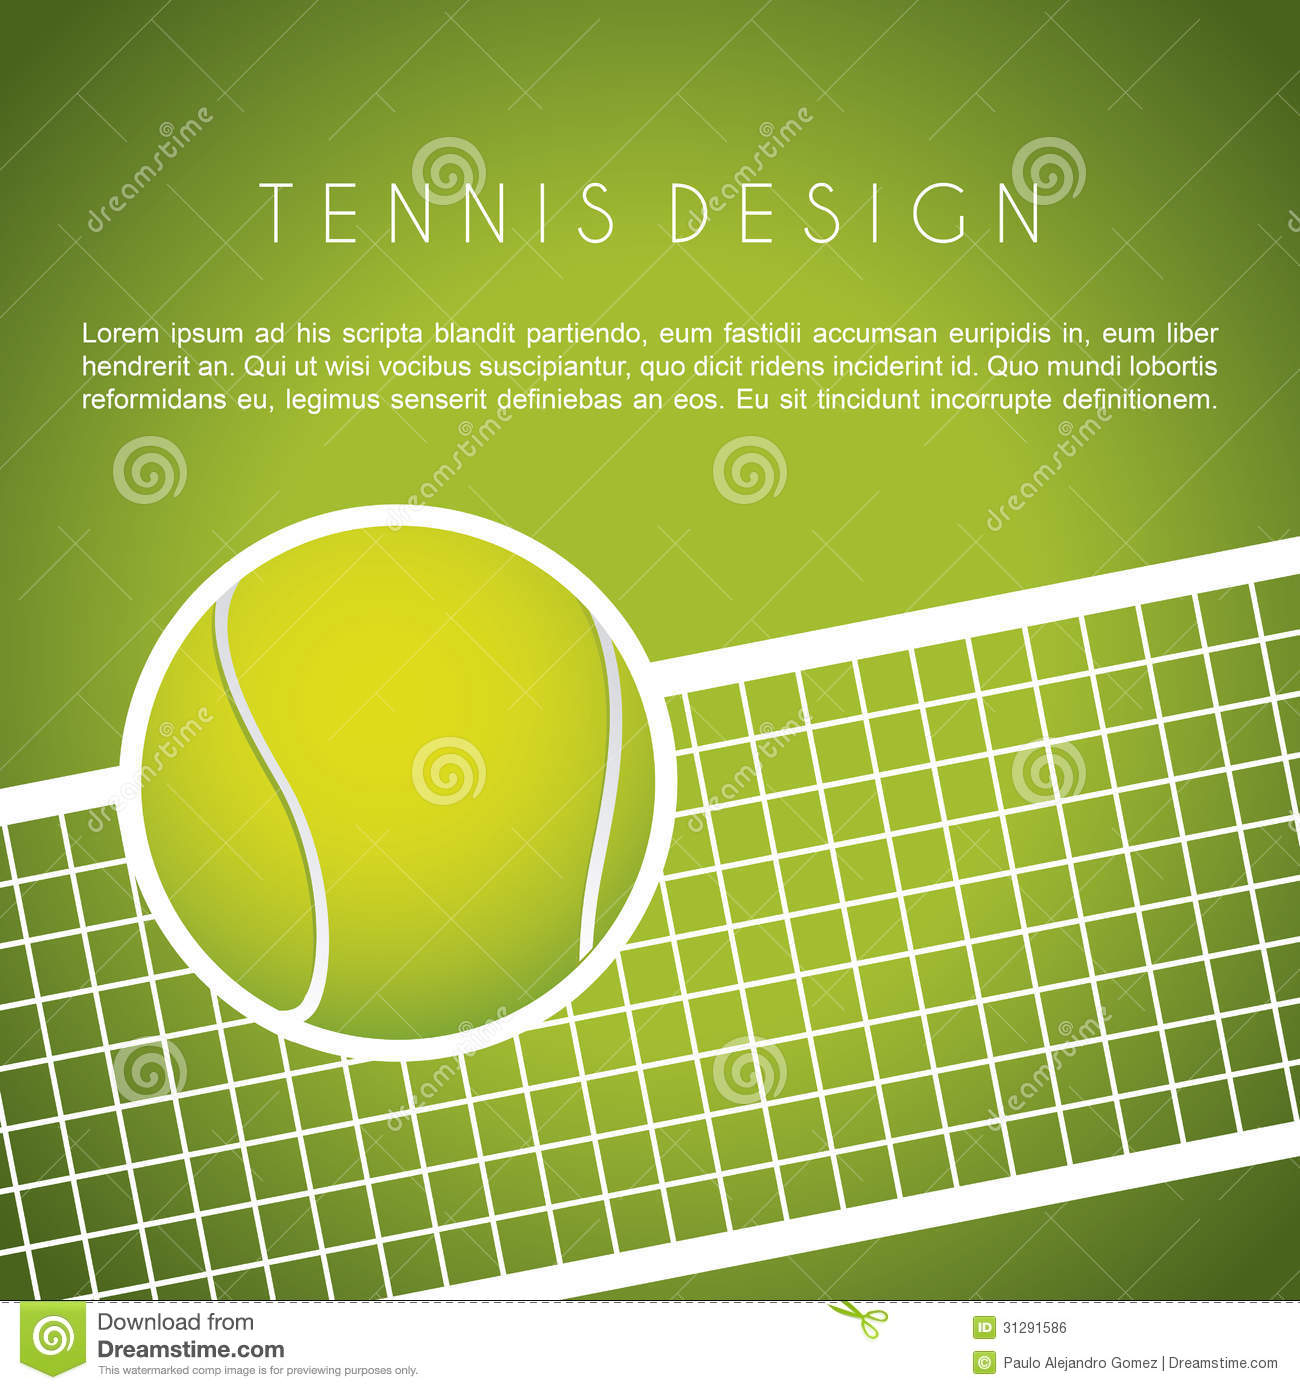 Tennis Design Royalty Free Stock Image - Image: 31291586 Tennis Net Vector